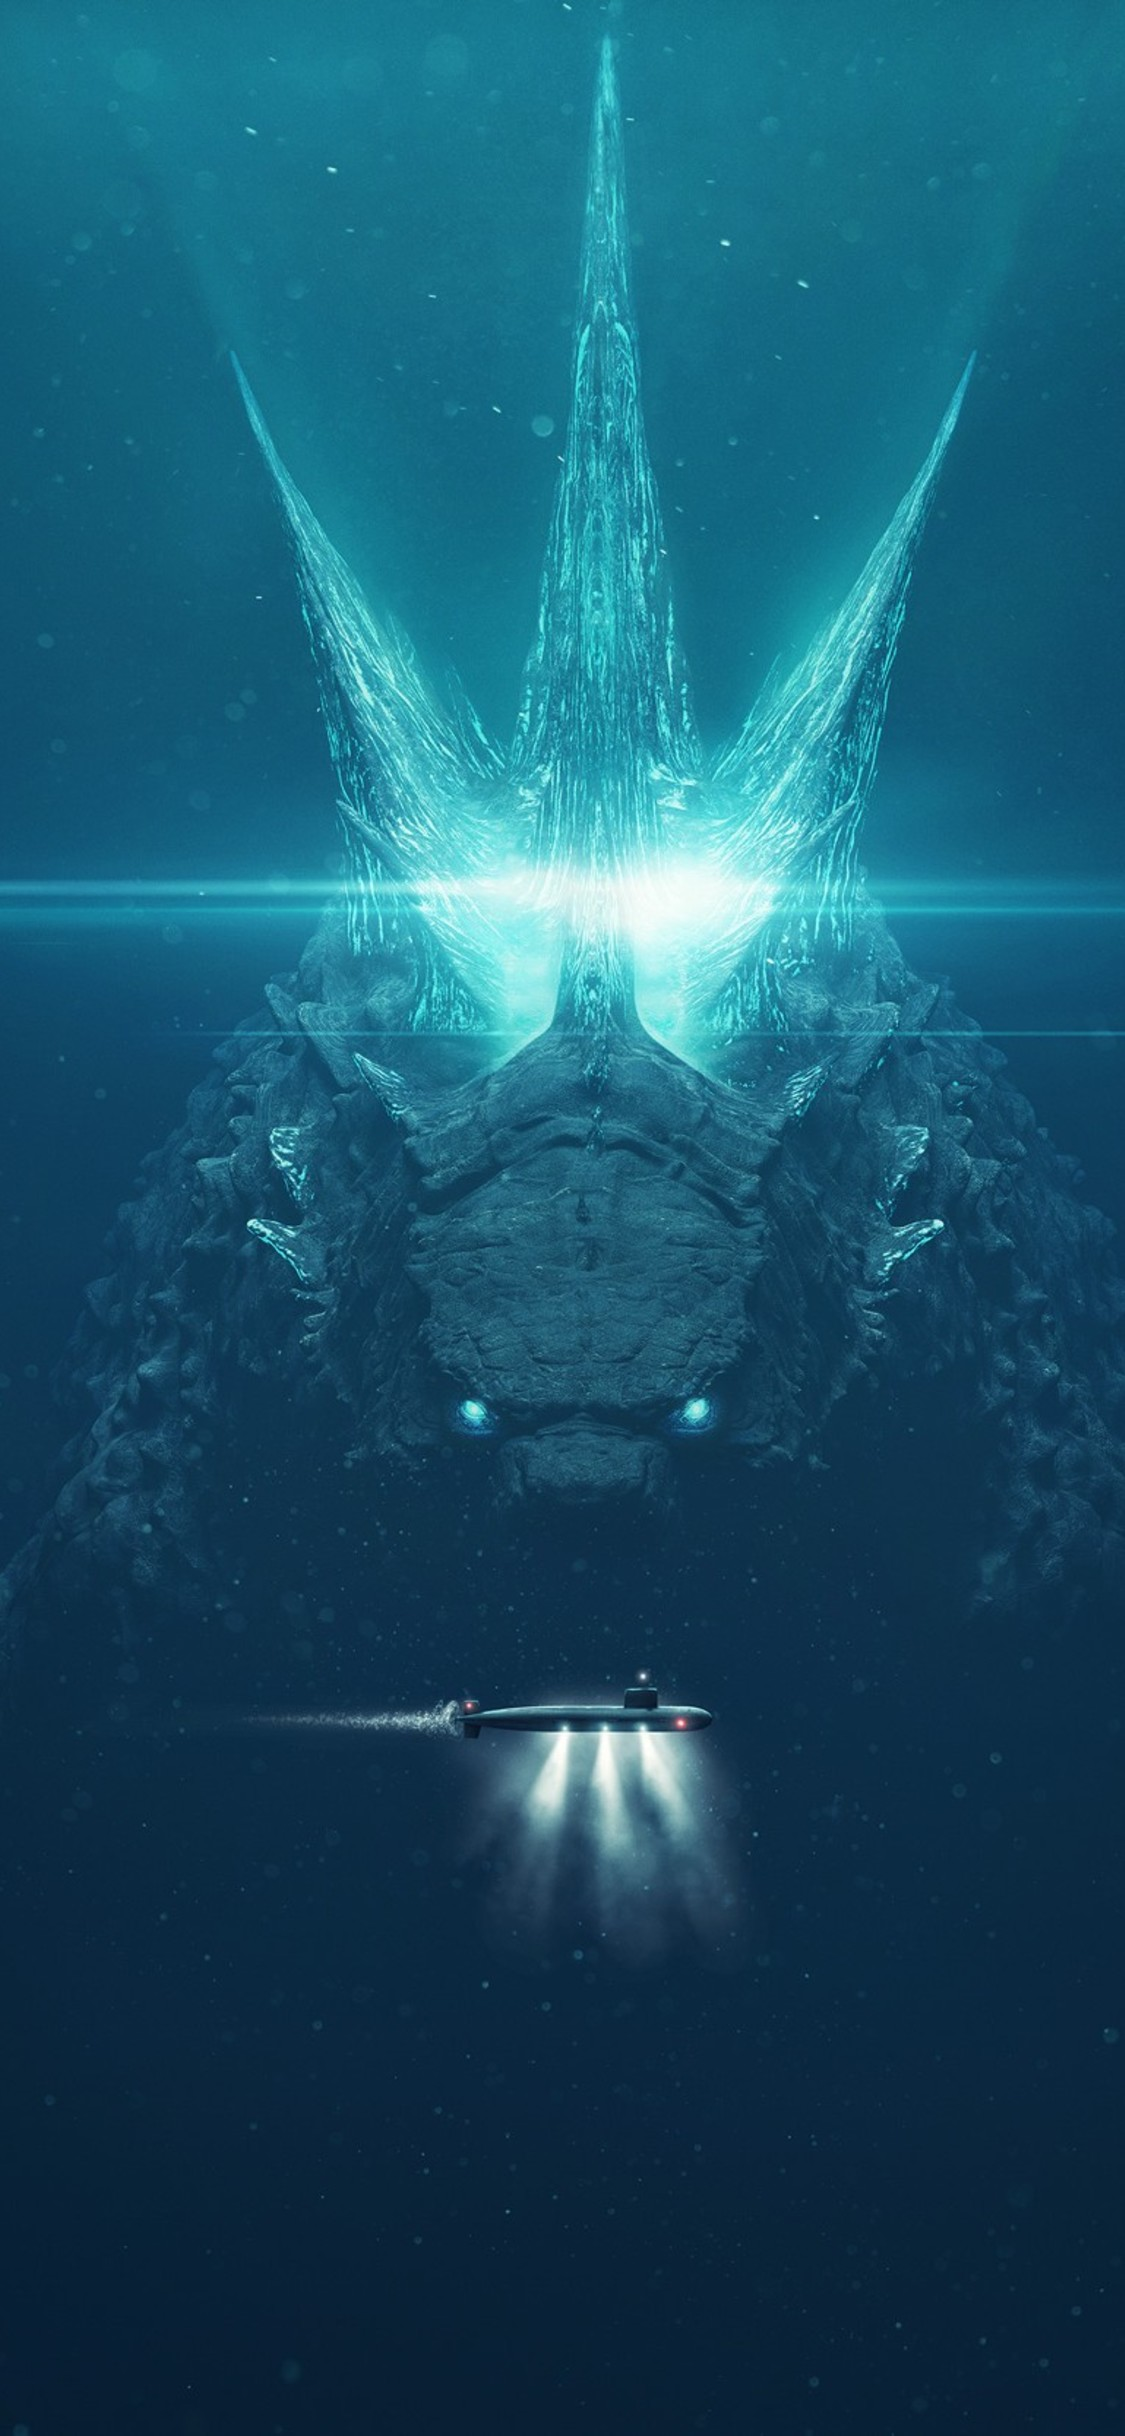 godzilla king of the monsters wallpaper Google Search